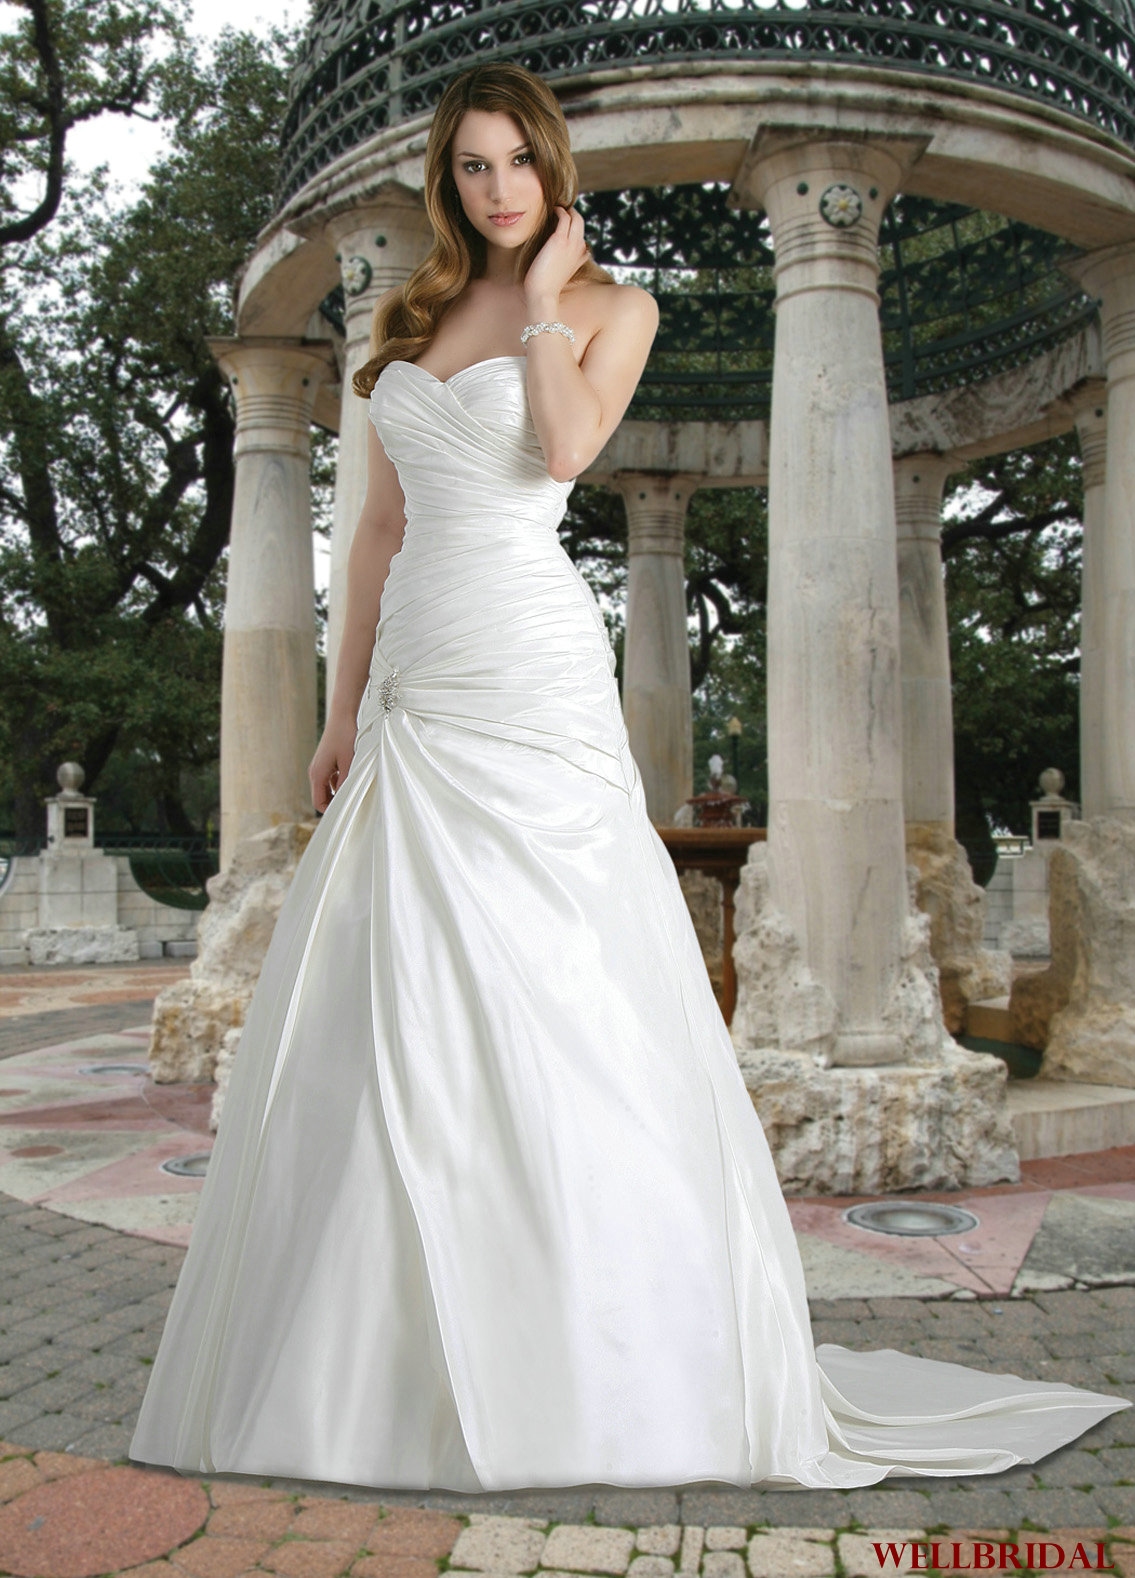 Affordable Wedding Dresses in Chicago, Cheap Wedding Dresses, Discount Wedding Dresses Chicago, Wedding Dress Shops in Chicago, Couture Wedding Dresses Chicago, Rent Wedding Dresses Chicago, Discount Wedding Dresses Chicago IL, Sample Wedding Dresses Chicago